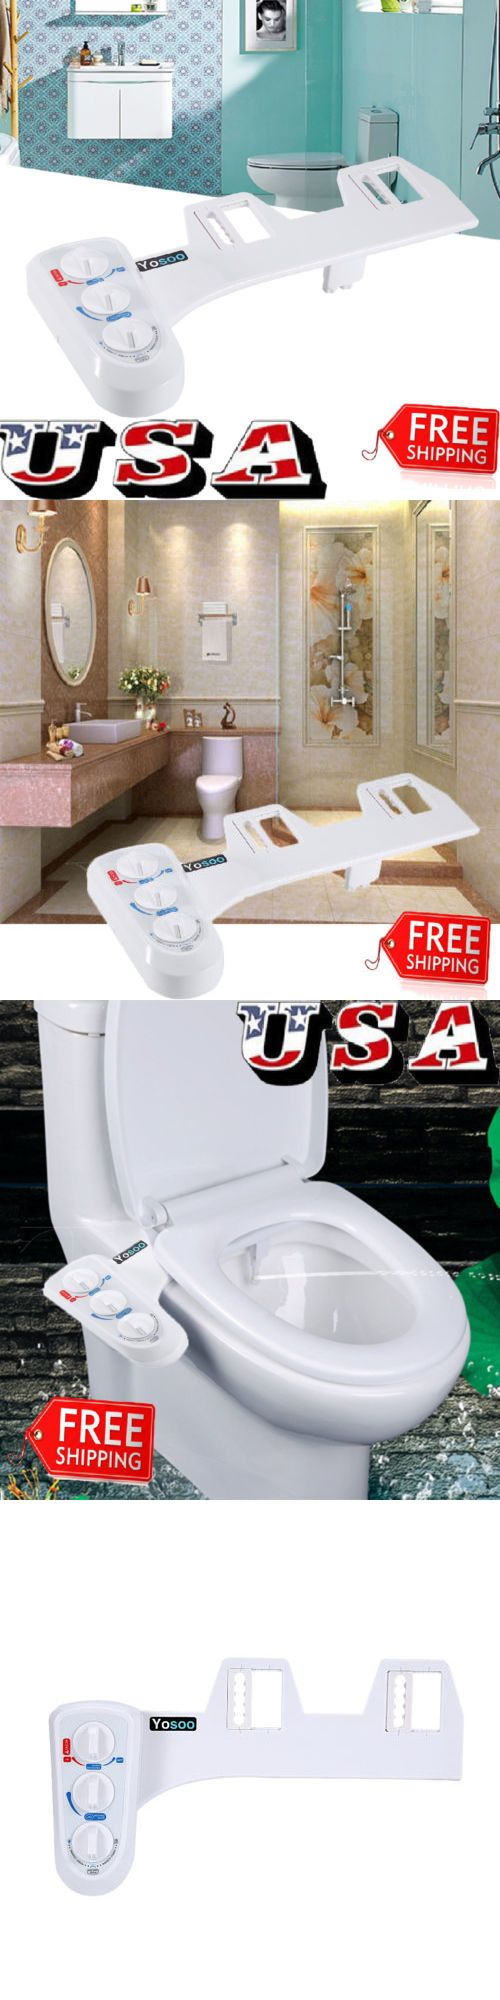 Details about Hot/Cold Toilet Seat Attachment Fresh Water